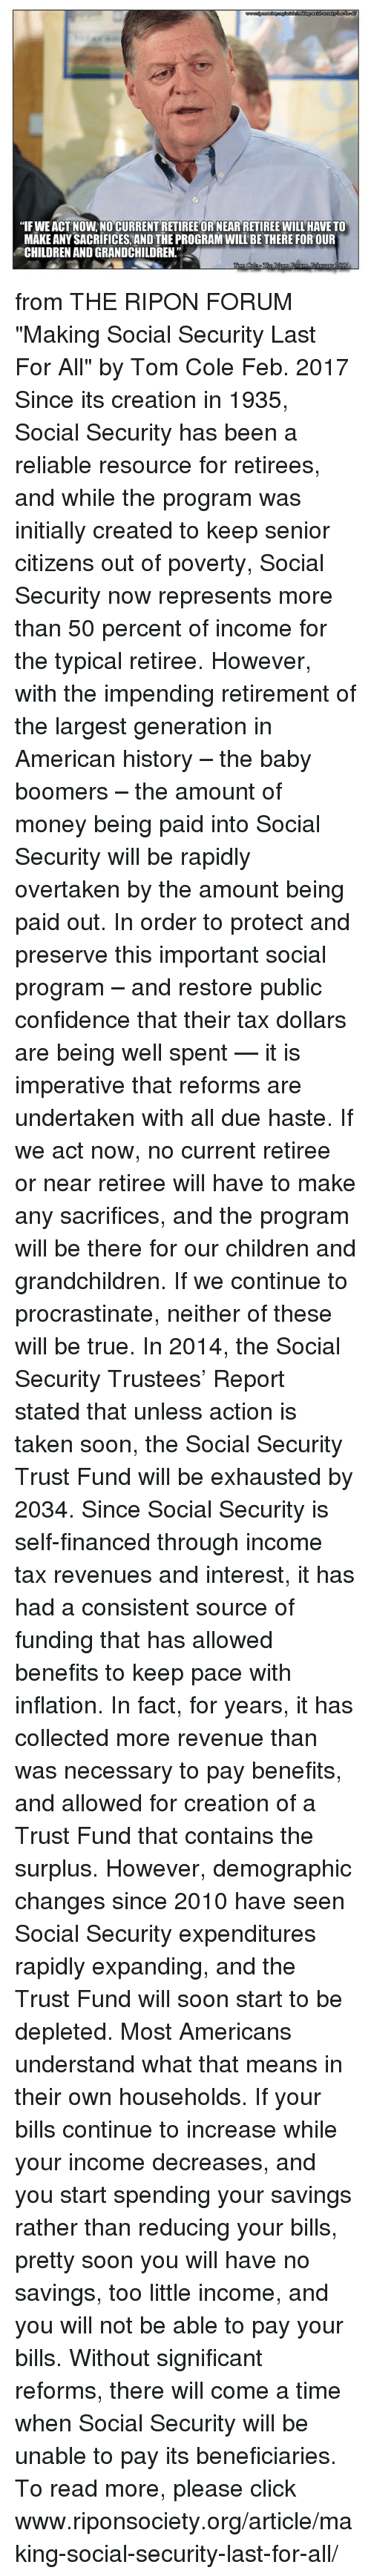 """Children, Click, and Confidence: """"IFWEACT NOW NO CURRENTRETIREE OR NEARRETIREE WILL HAVE TO  MAKE ANY SACRIFICES, AND THE PROGRAM WILL BETHERE FOR OUR  CHILDRENANDGRANDCHILDREN""""  Lorri from THE RIPON FORUM """"Making Social Security Last For All"""" by Tom Cole Feb. 2017  Since its creation in 1935, Social Security has been a reliable resource for retirees, and while the program was initially created to keep senior citizens out of poverty, Social Security now represents more than 50 percent of income for the typical retiree.  However, with the impending retirement of the largest generation in American history – the baby boomers – the amount of money being paid into Social Security will be rapidly overtaken by the amount being paid out.  In order to protect and preserve this important social program – and restore public confidence that their tax dollars are being well spent — it is imperative that reforms are undertaken with all due haste. If we act now, no current retiree or near retiree will have to make any sacrifices, and the program will be there for our children and grandchildren. If we continue to procrastinate, neither of these will be true.  In 2014, the Social Security Trustees' Report stated that unless action is taken soon, the Social Security Trust Fund will be exhausted by 2034. Since Social Security is self-financed through income tax revenues and interest, it has had a consistent source of funding that has allowed benefits to keep pace with inflation. In fact, for years, it has collected more revenue than was necessary to pay benefits, and allowed for creation of a Trust Fund that contains the surplus.  However, demographic changes since 2010 have seen Social Security expenditures rapidly expanding, and the Trust Fund will soon start to be depleted.  Most Americans understand what that means in their own households. If your bills continue to increase while your income decreases, and you start spending your savings rather than reducing your bills, pretty soo"""